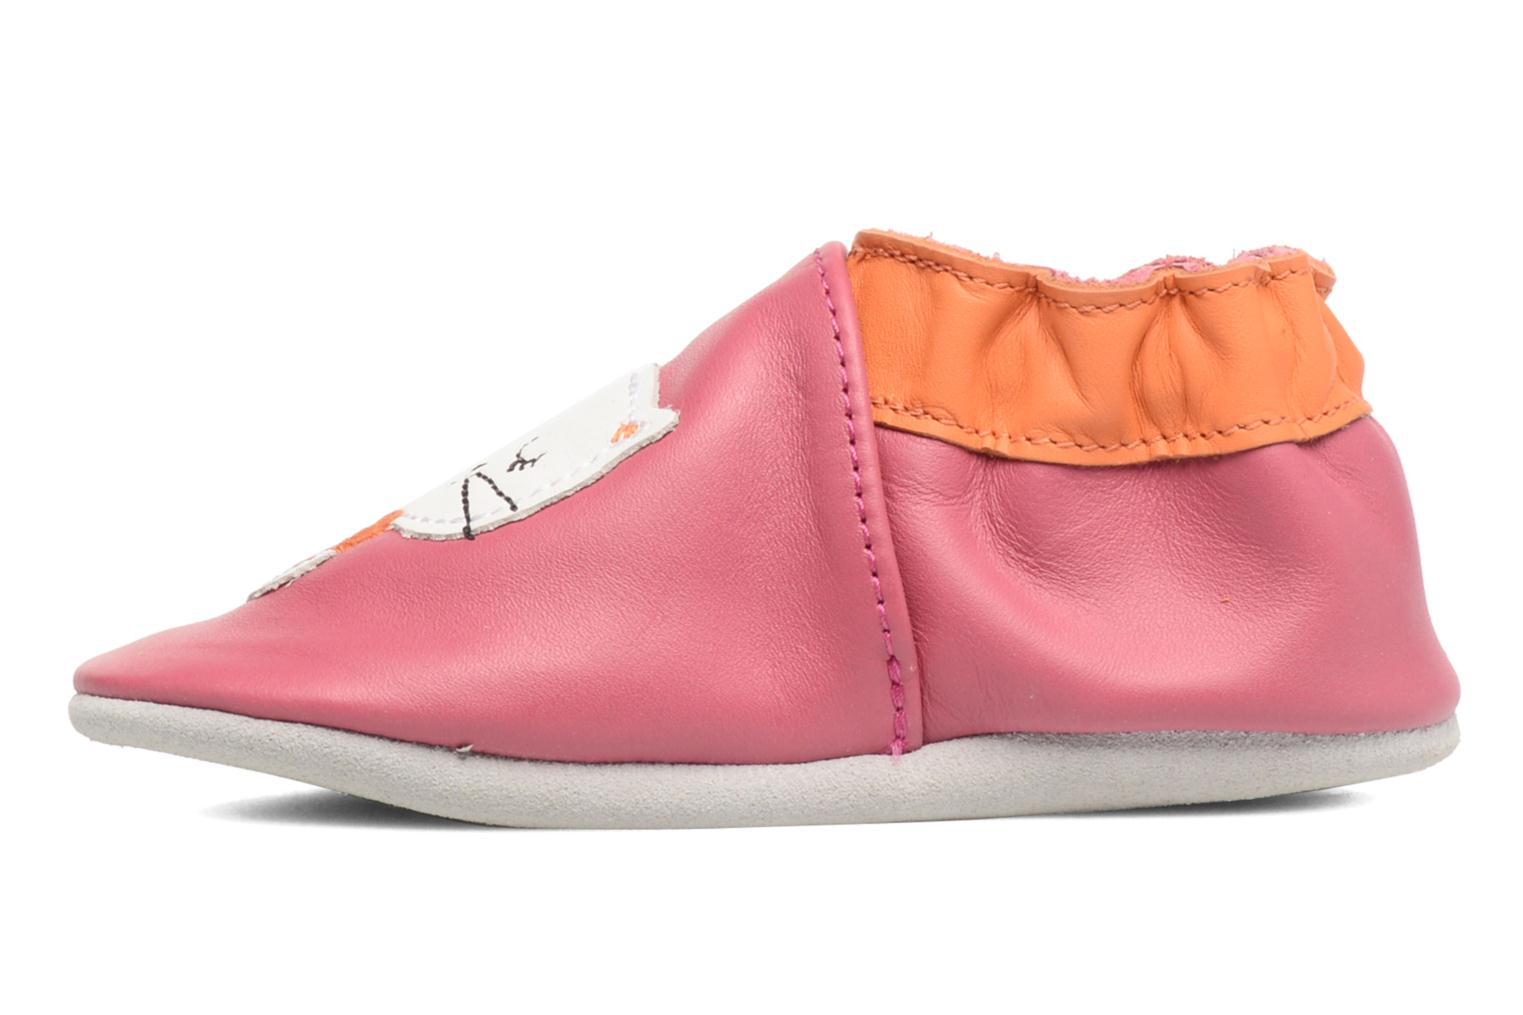 Chaussons Robeez Kitty Kat Rose vue face